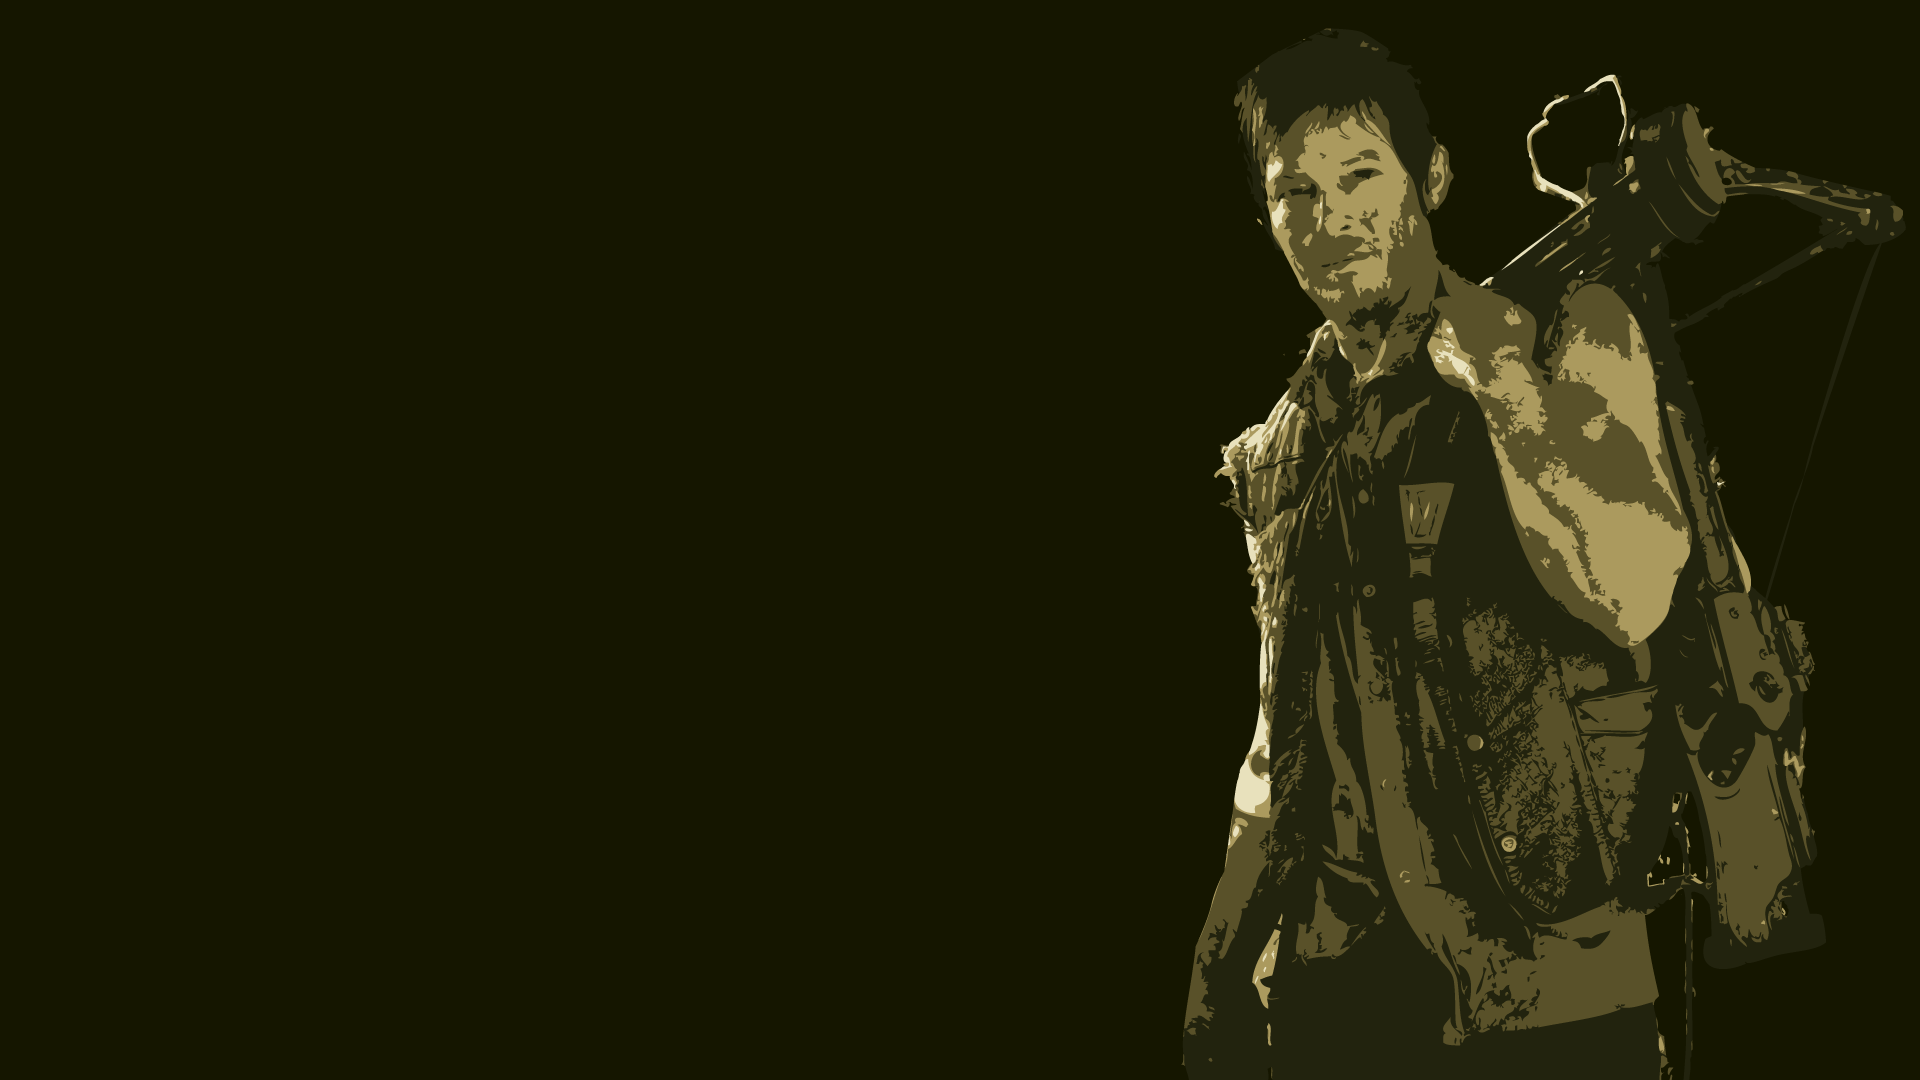 Download Daryl Wallpaper Hd Backgrounds Download Itlcat